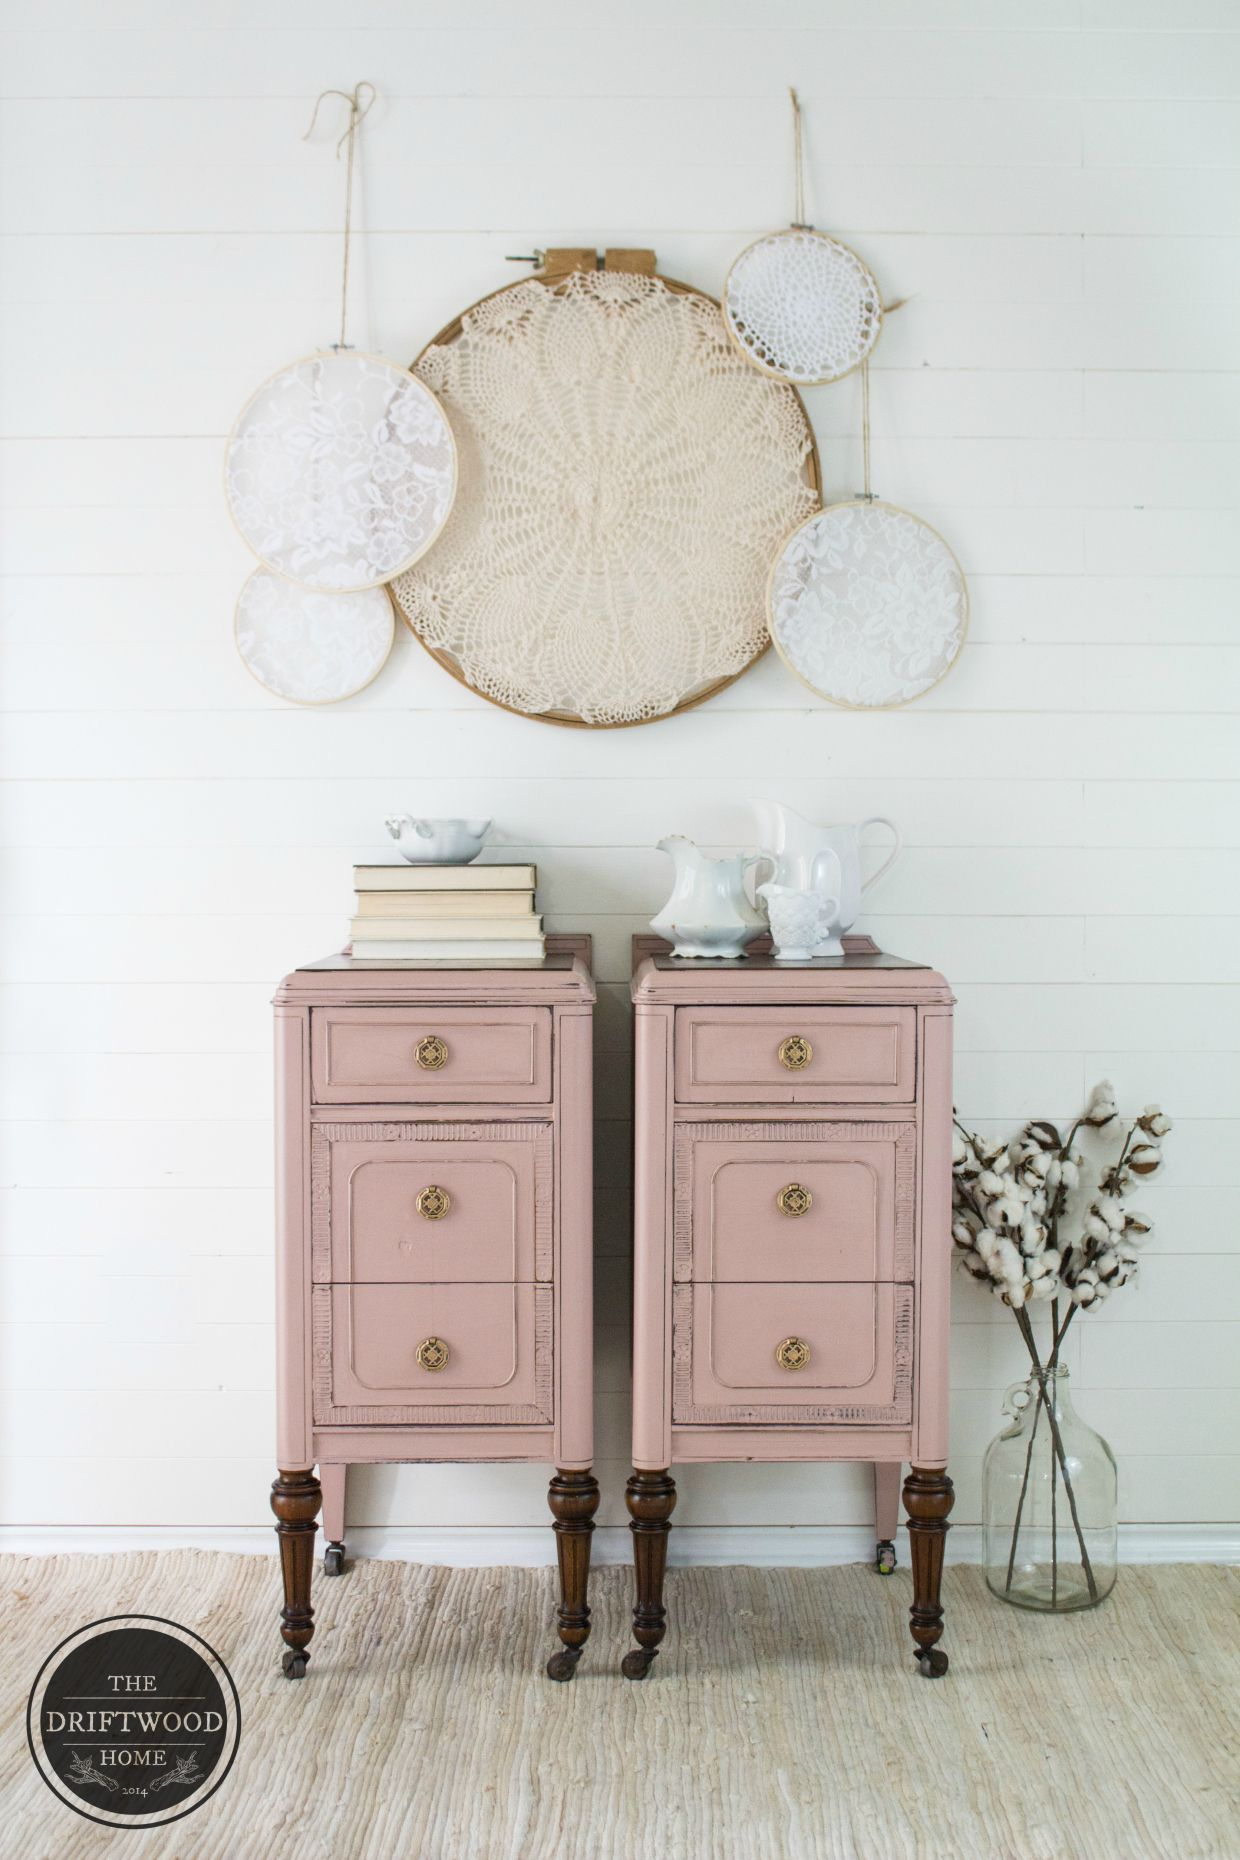 Shopping déco : l'appartement farmhouse épuré de Brook & Peony, styliste